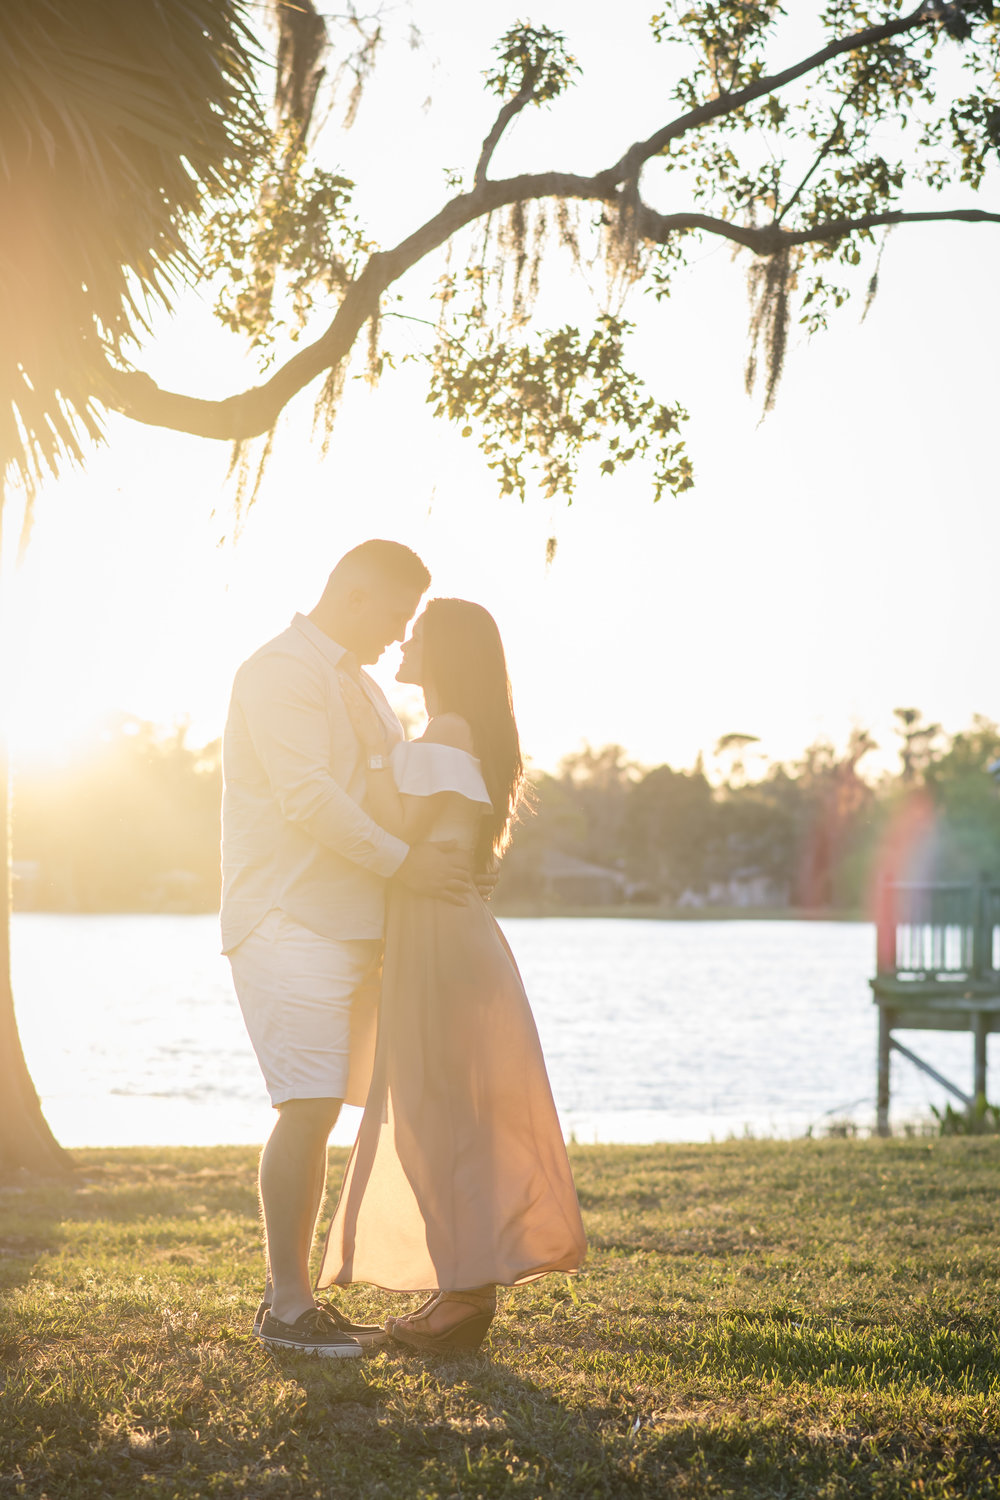 cypress-grove-park-engagement-session-orlando-photographer-yanitza-ninett-21.jpg